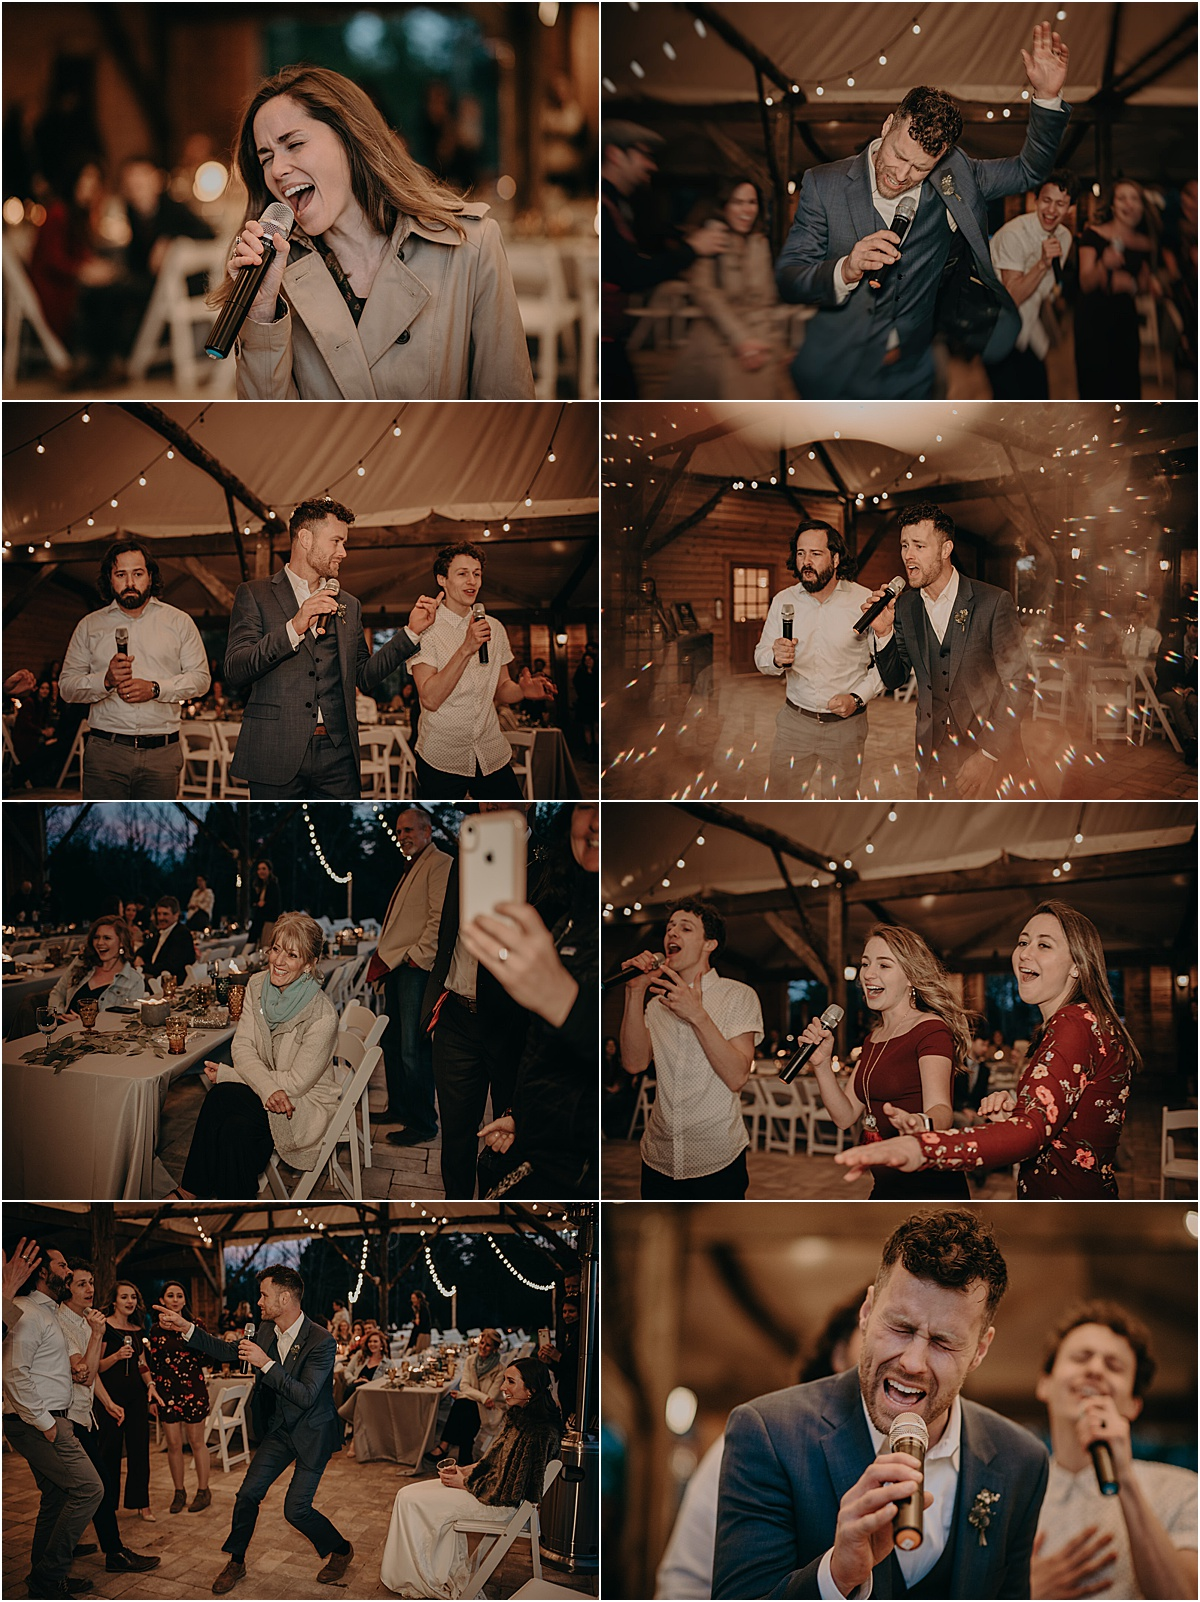 guests dancing and singing with mic during wedding reception